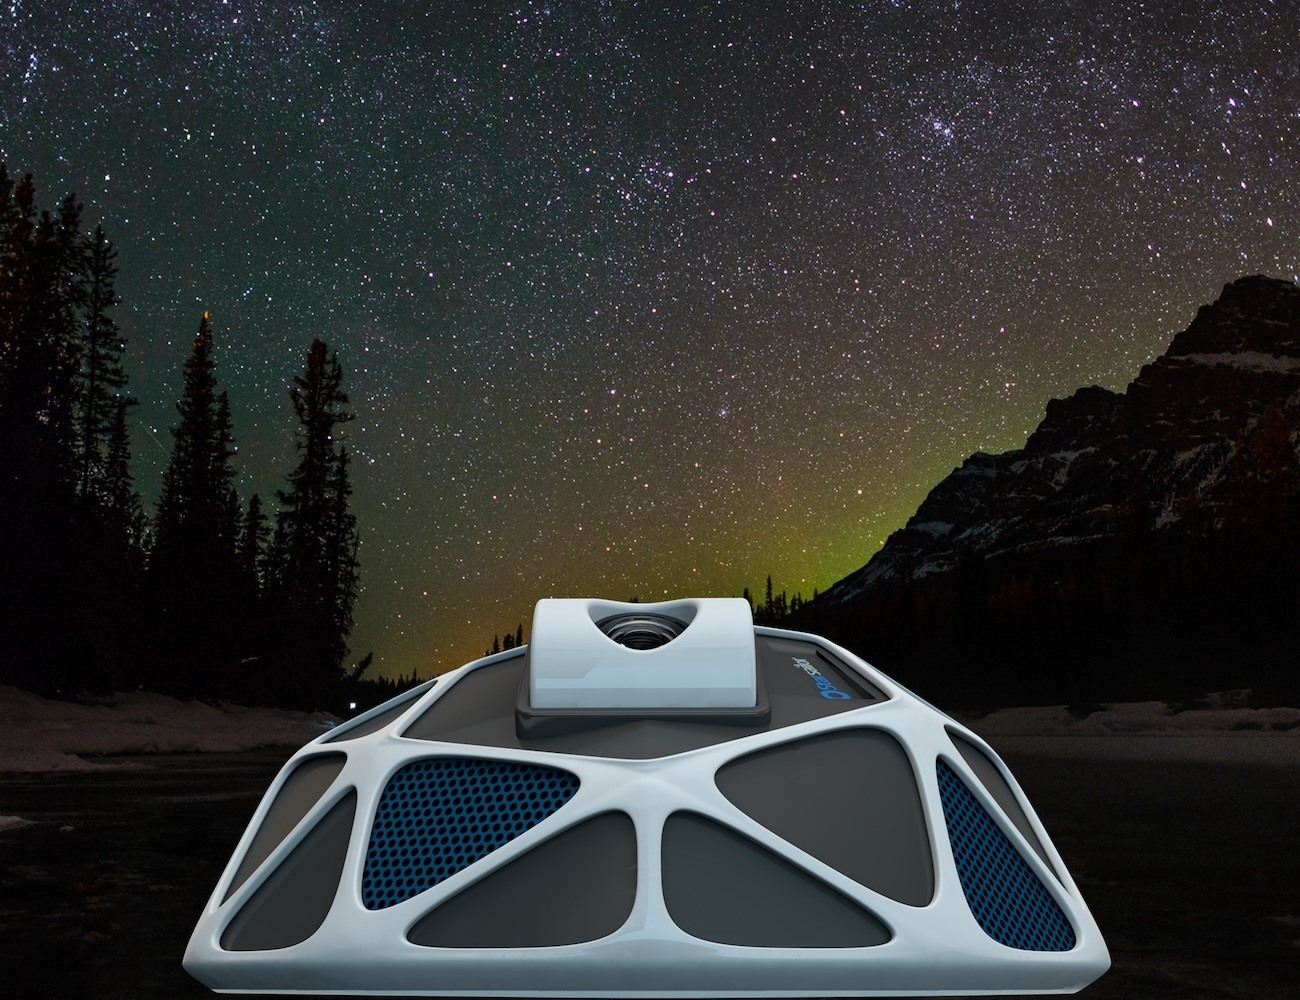 StarSailor Ambient Space Sleep Projector